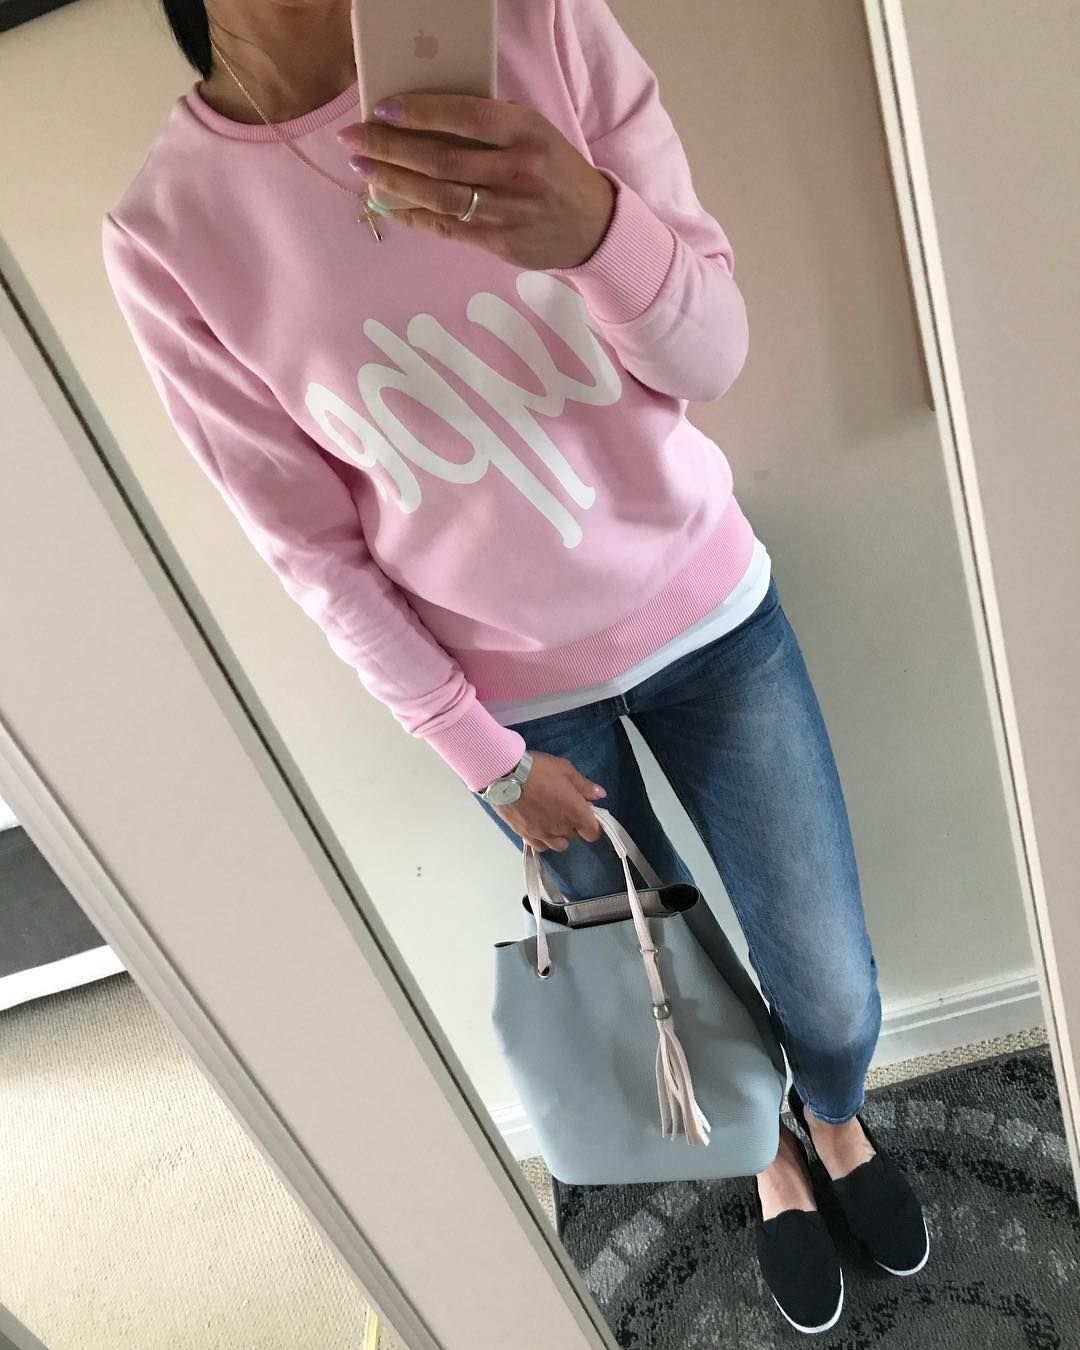 Summer fashion skinny jeans pink hoodie woman fashion pinterest